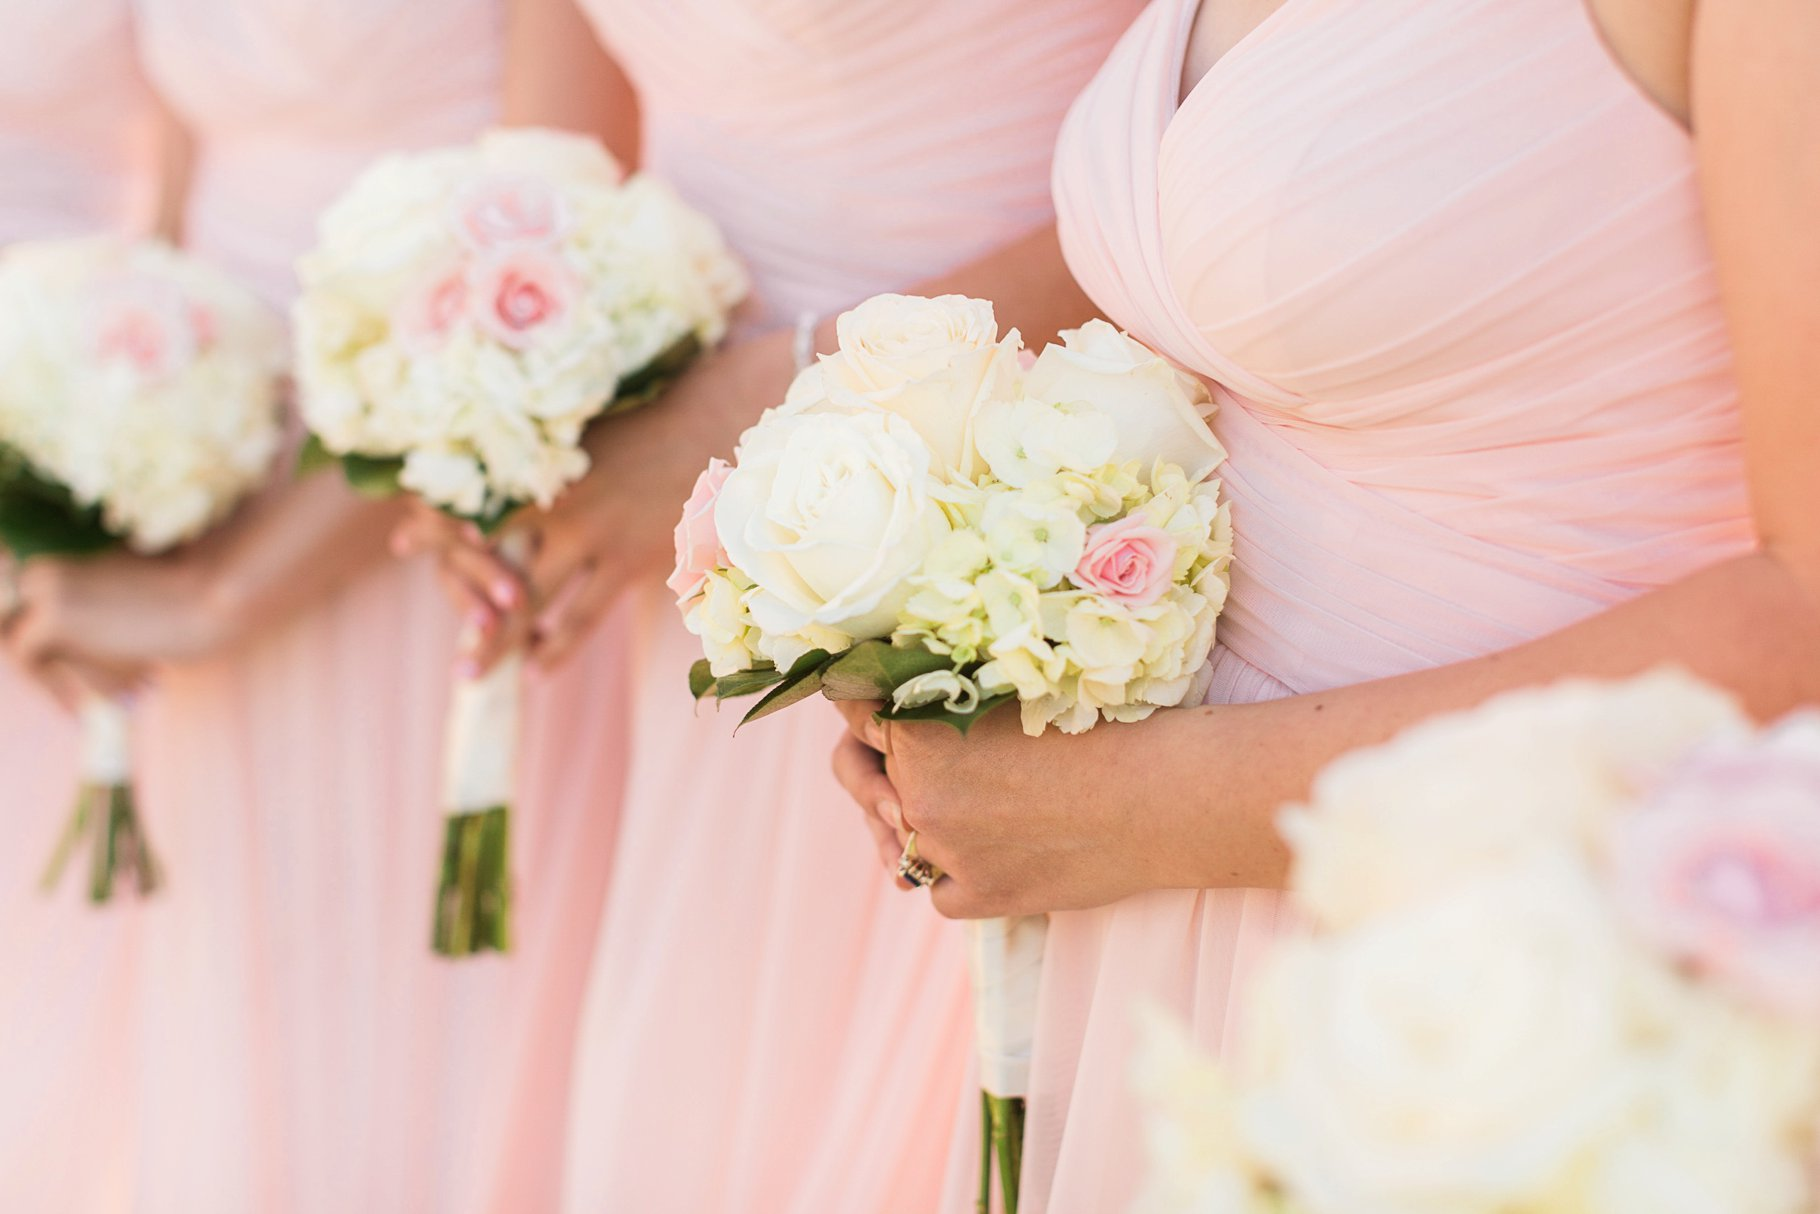 Pinkn bridemaids dresses with ivory rose and hydrangea bouquets